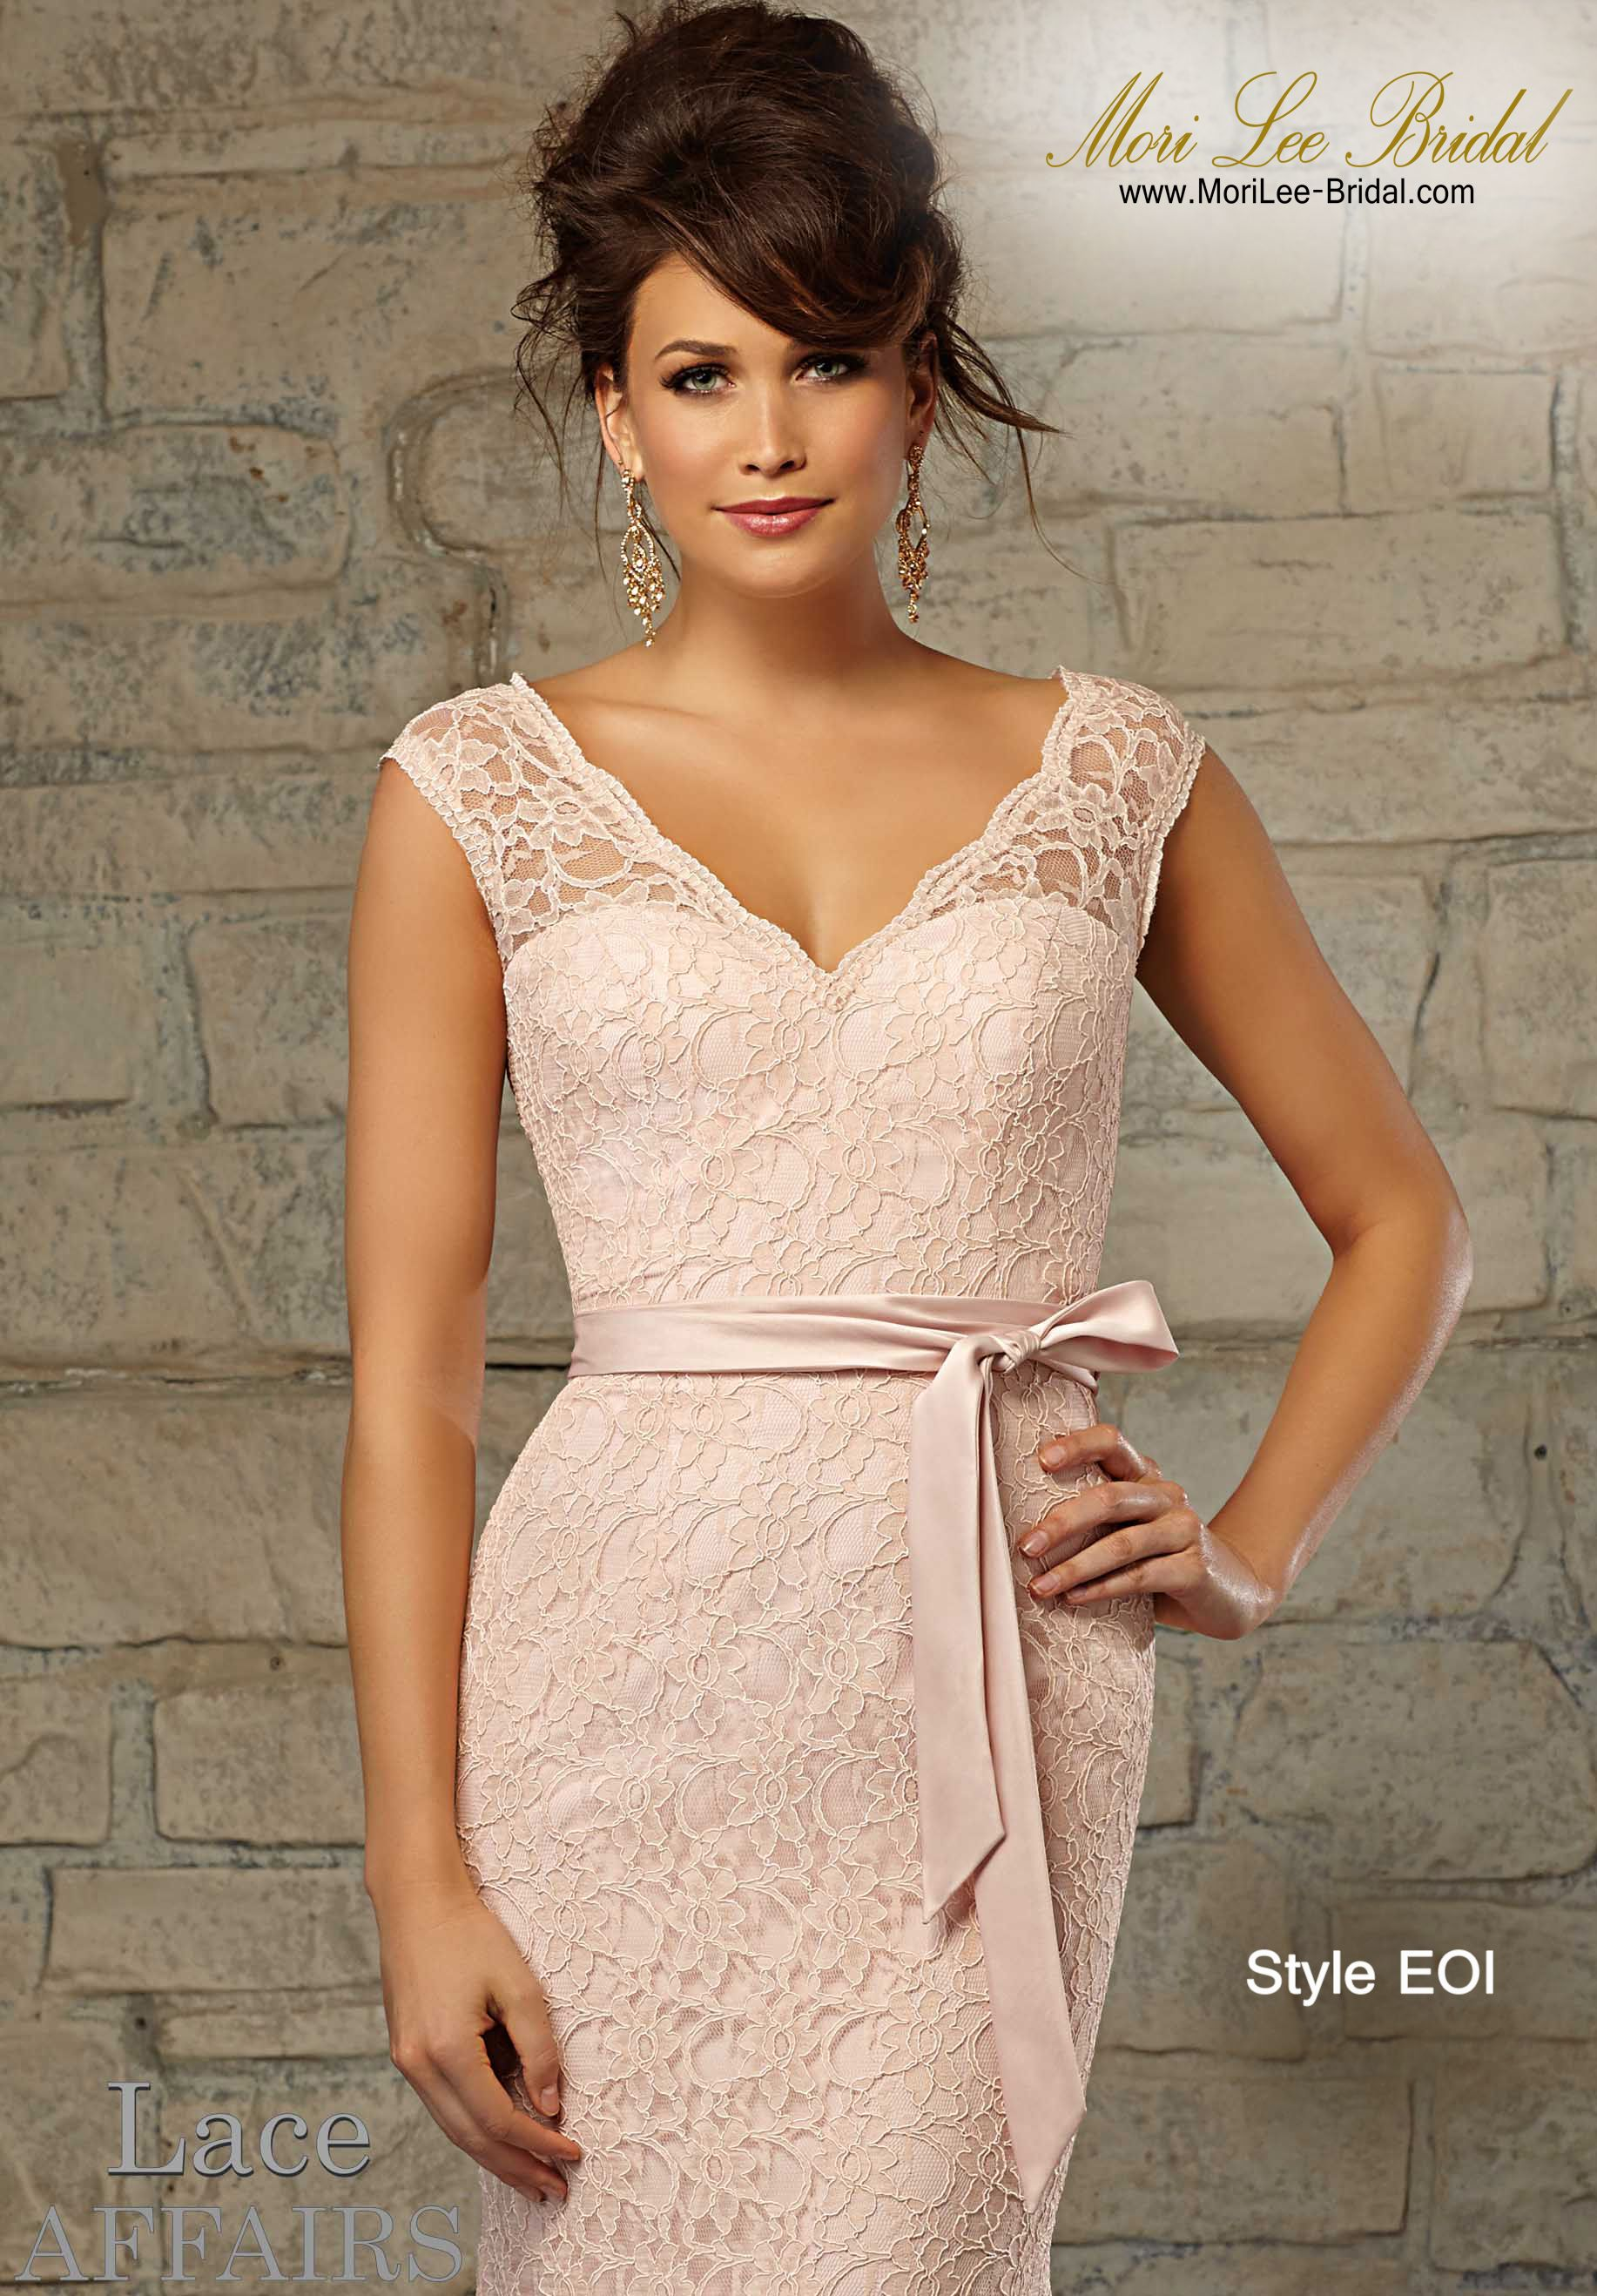 Dress Style Eoi Lace Available In All Mori Lee Bridesmaids Solid Colors